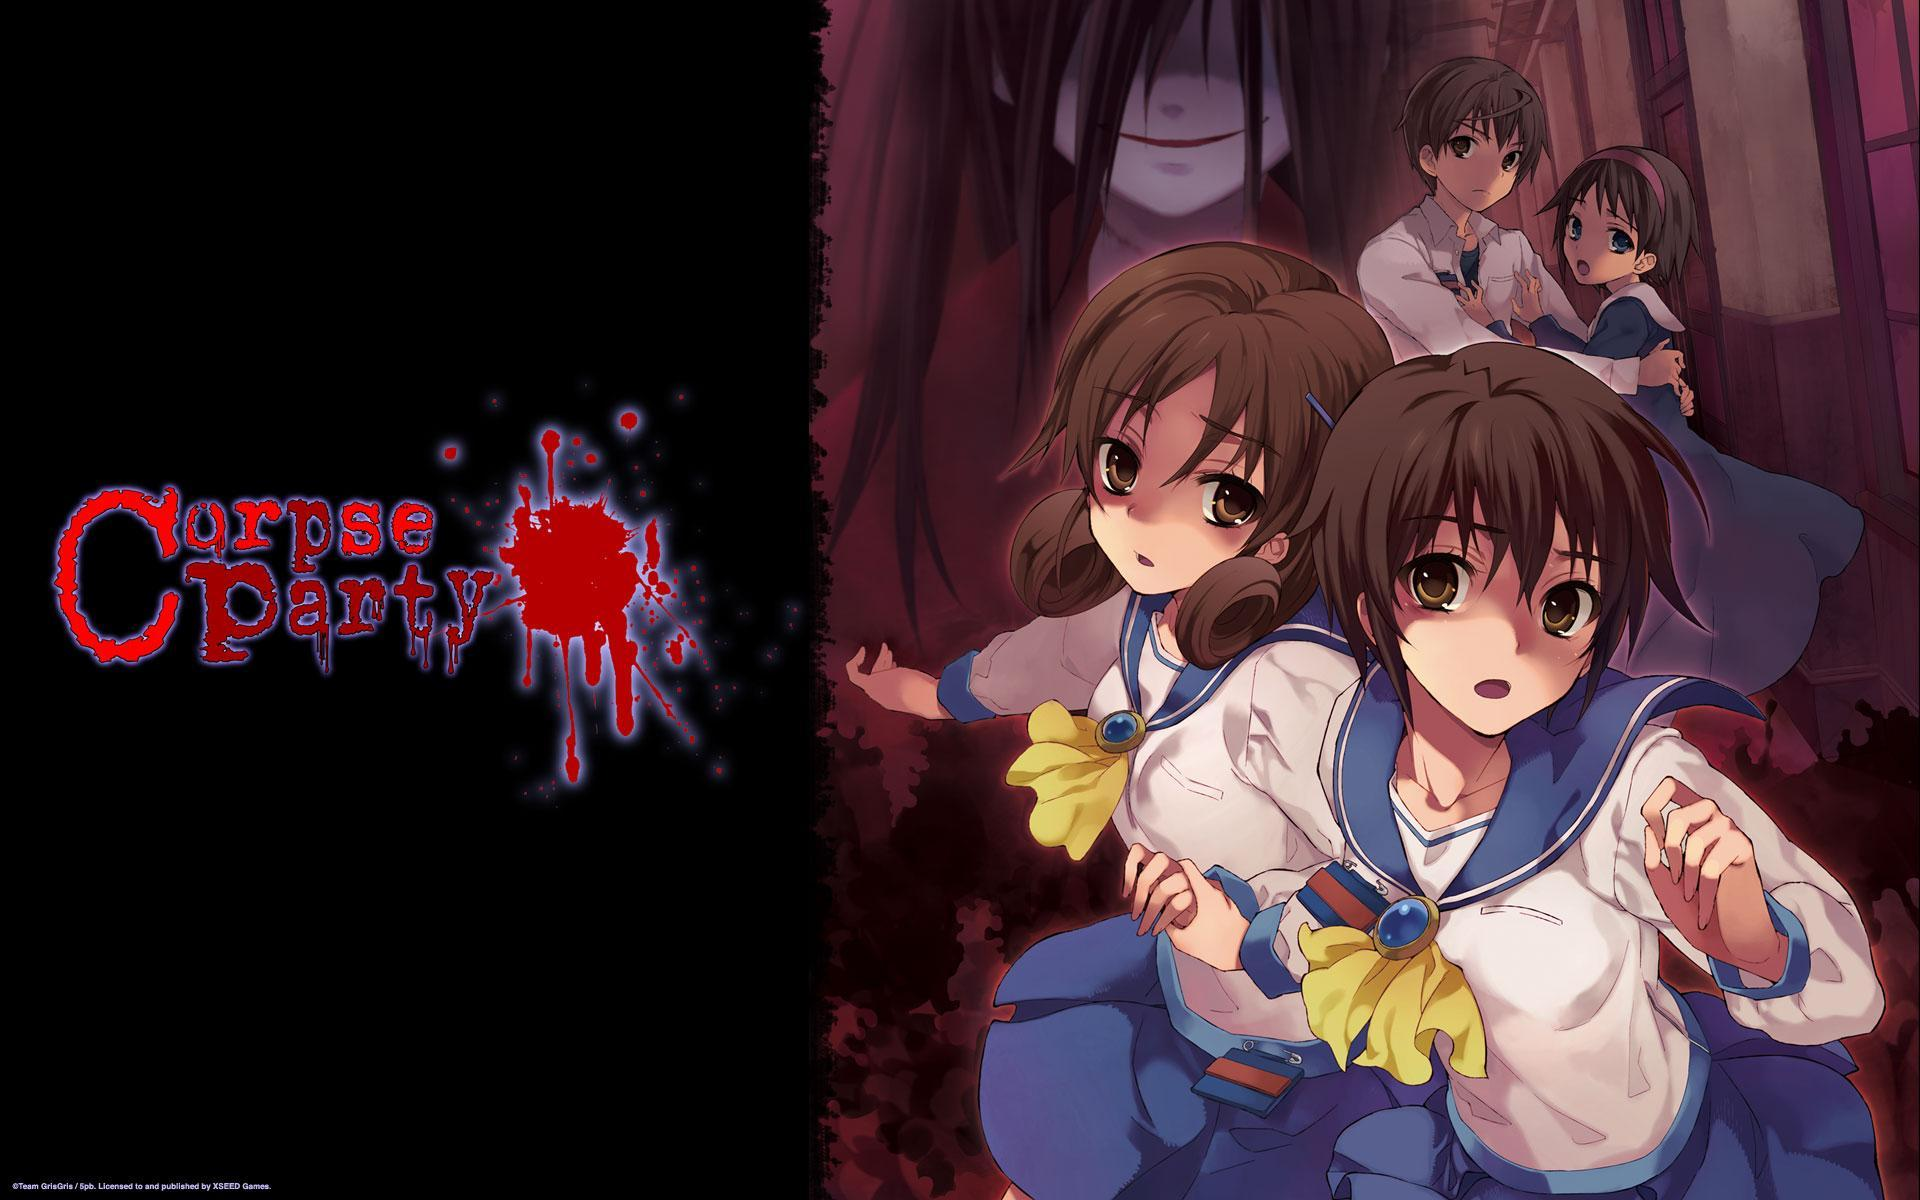 or Corpse party